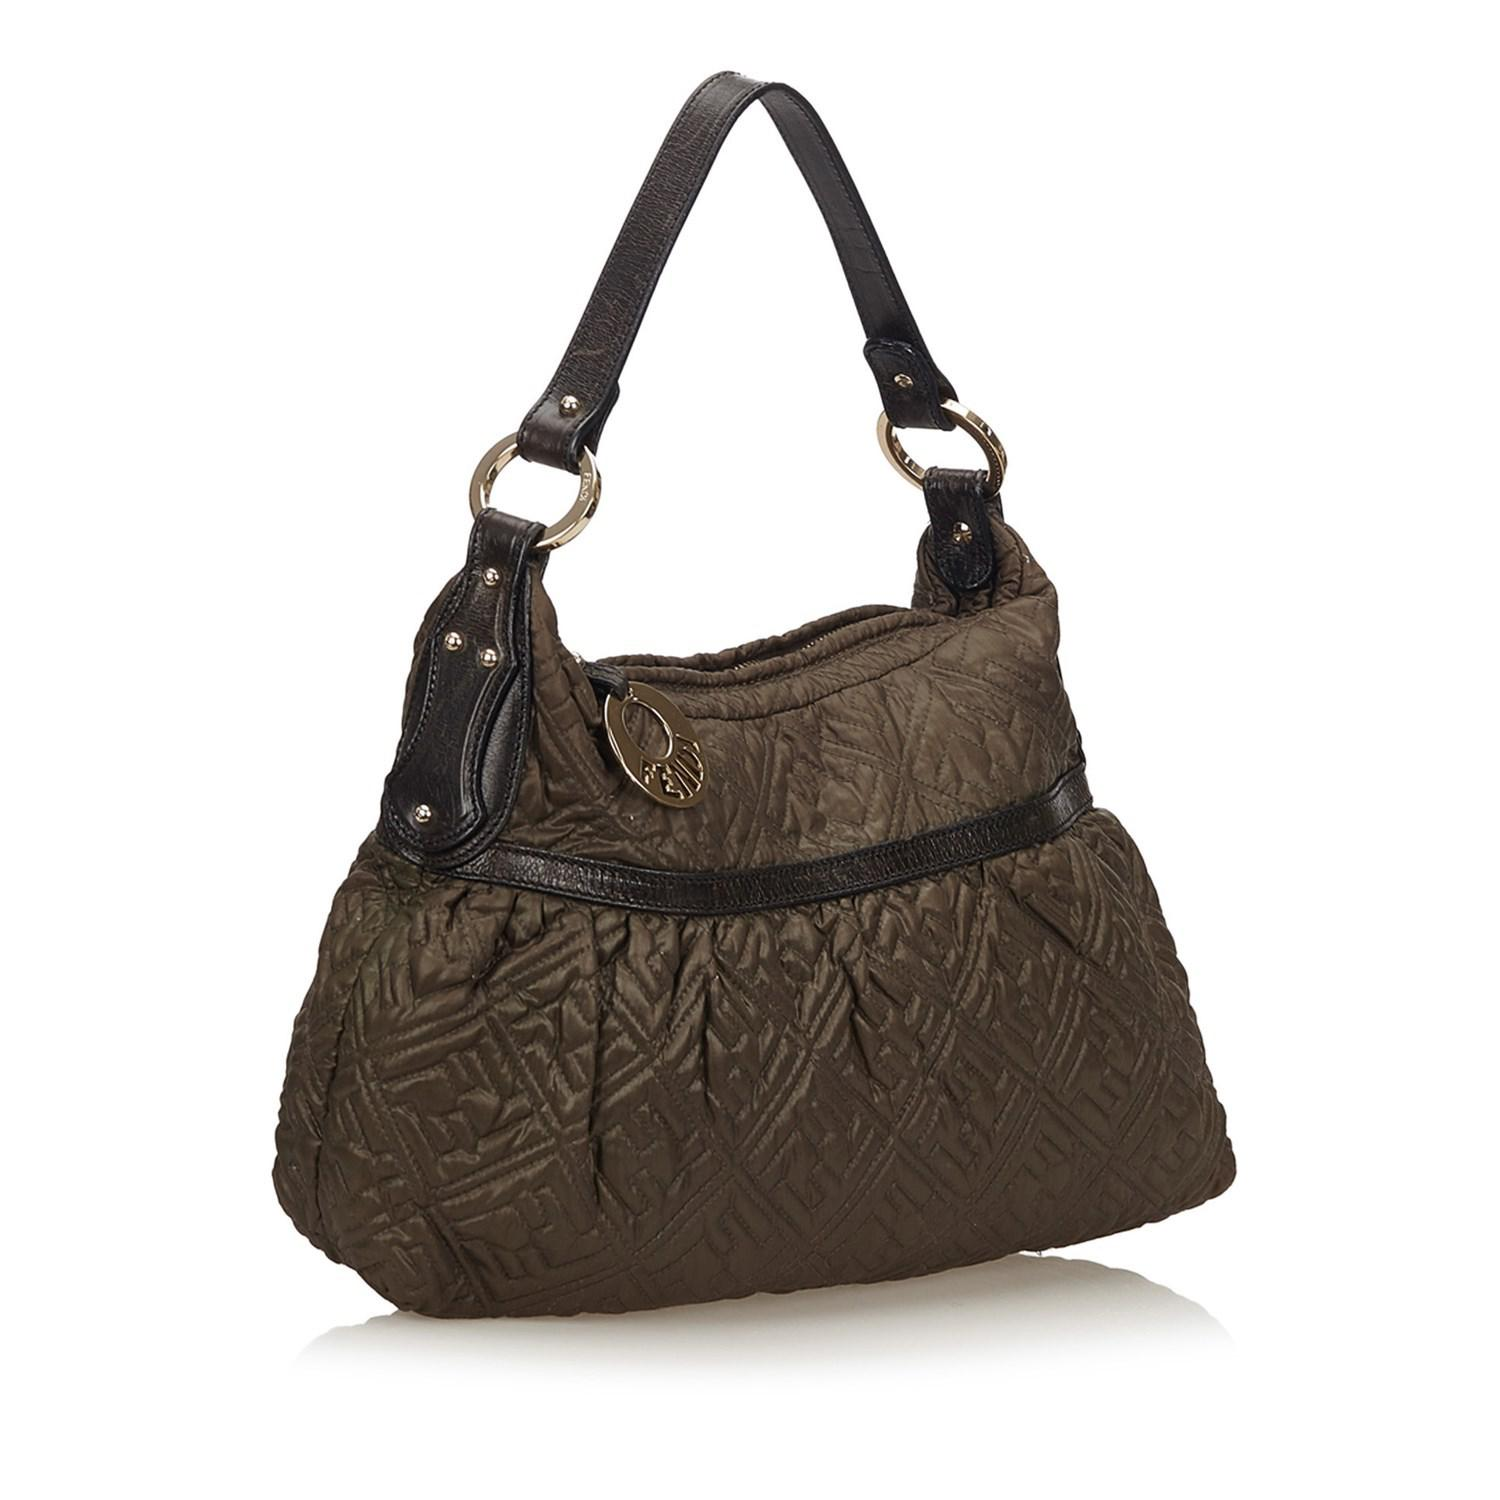 cdba100400cf ... 50% off fendi brown nylon chef bag lyst. view fullscreen 70085 5a22a ...